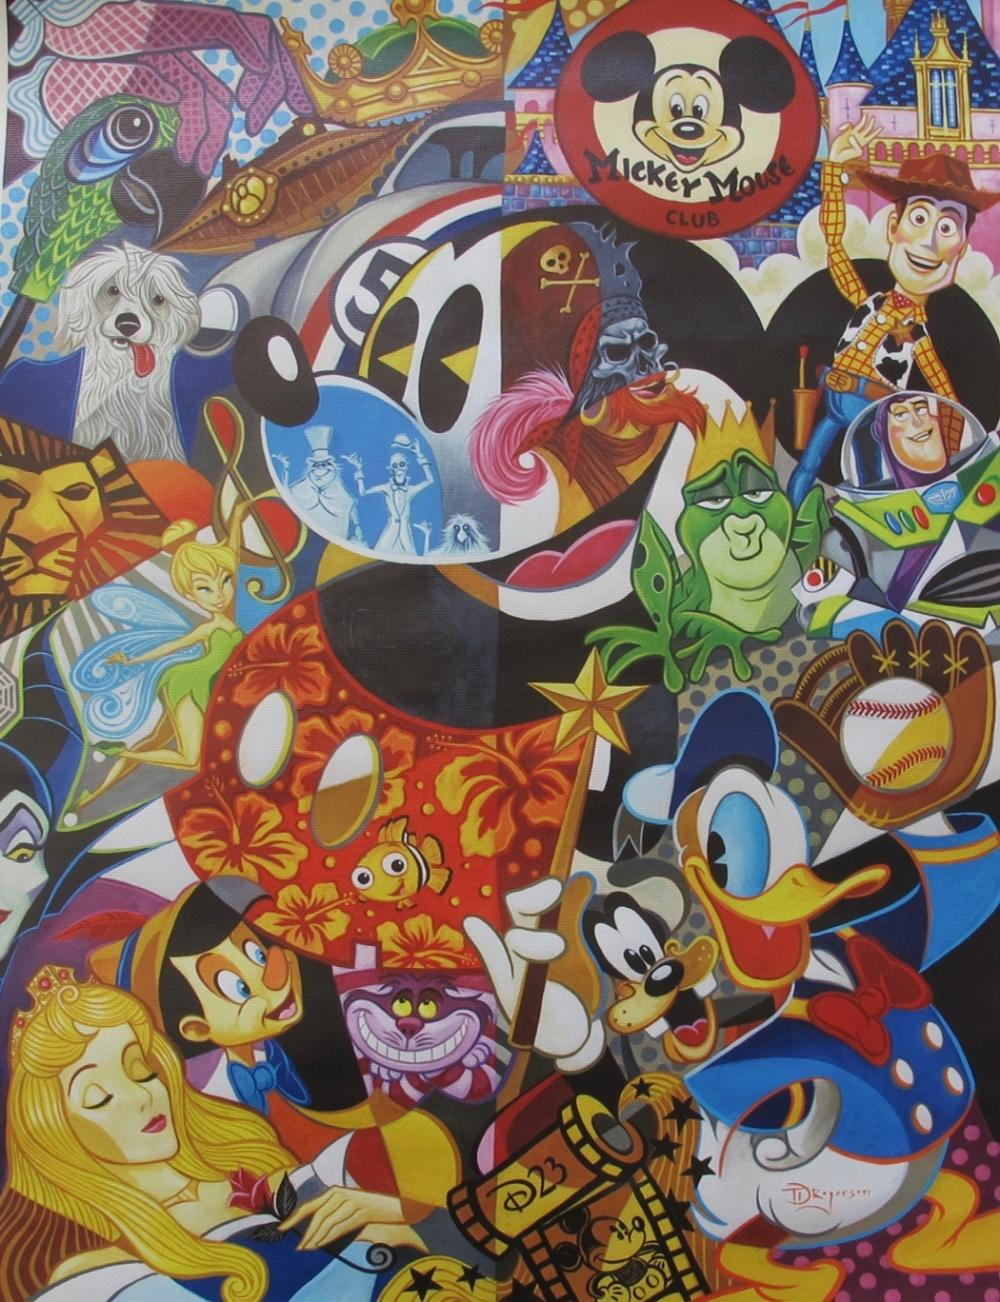 Tim Rogerson IN THE COMPANY OF LEGENDS Hand Signed Giclee on Canvas DISNEY ART